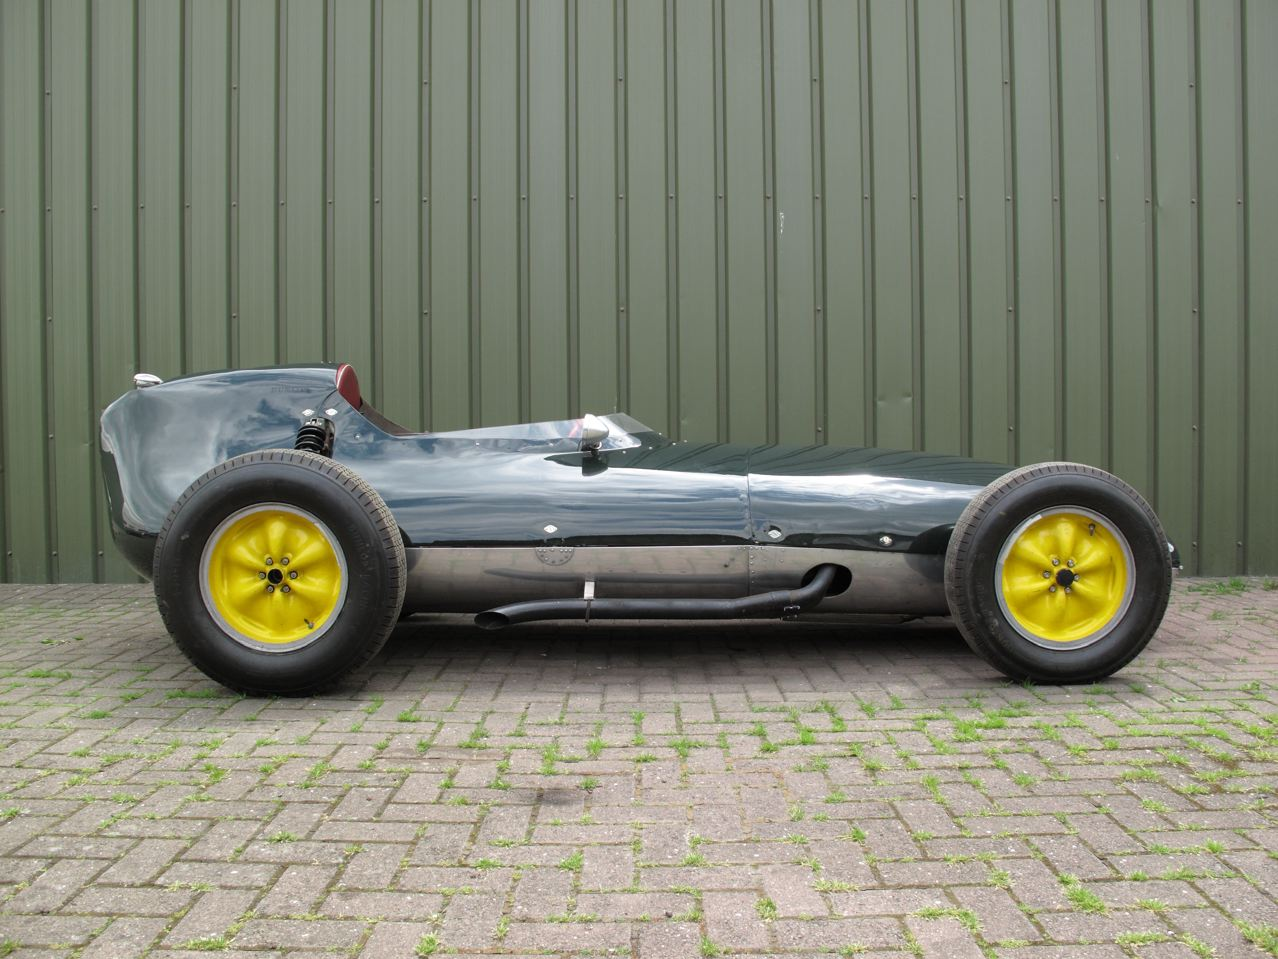 Classic Race Car for sale - 1958 F2 Lotus 16 - Retro Race Cars